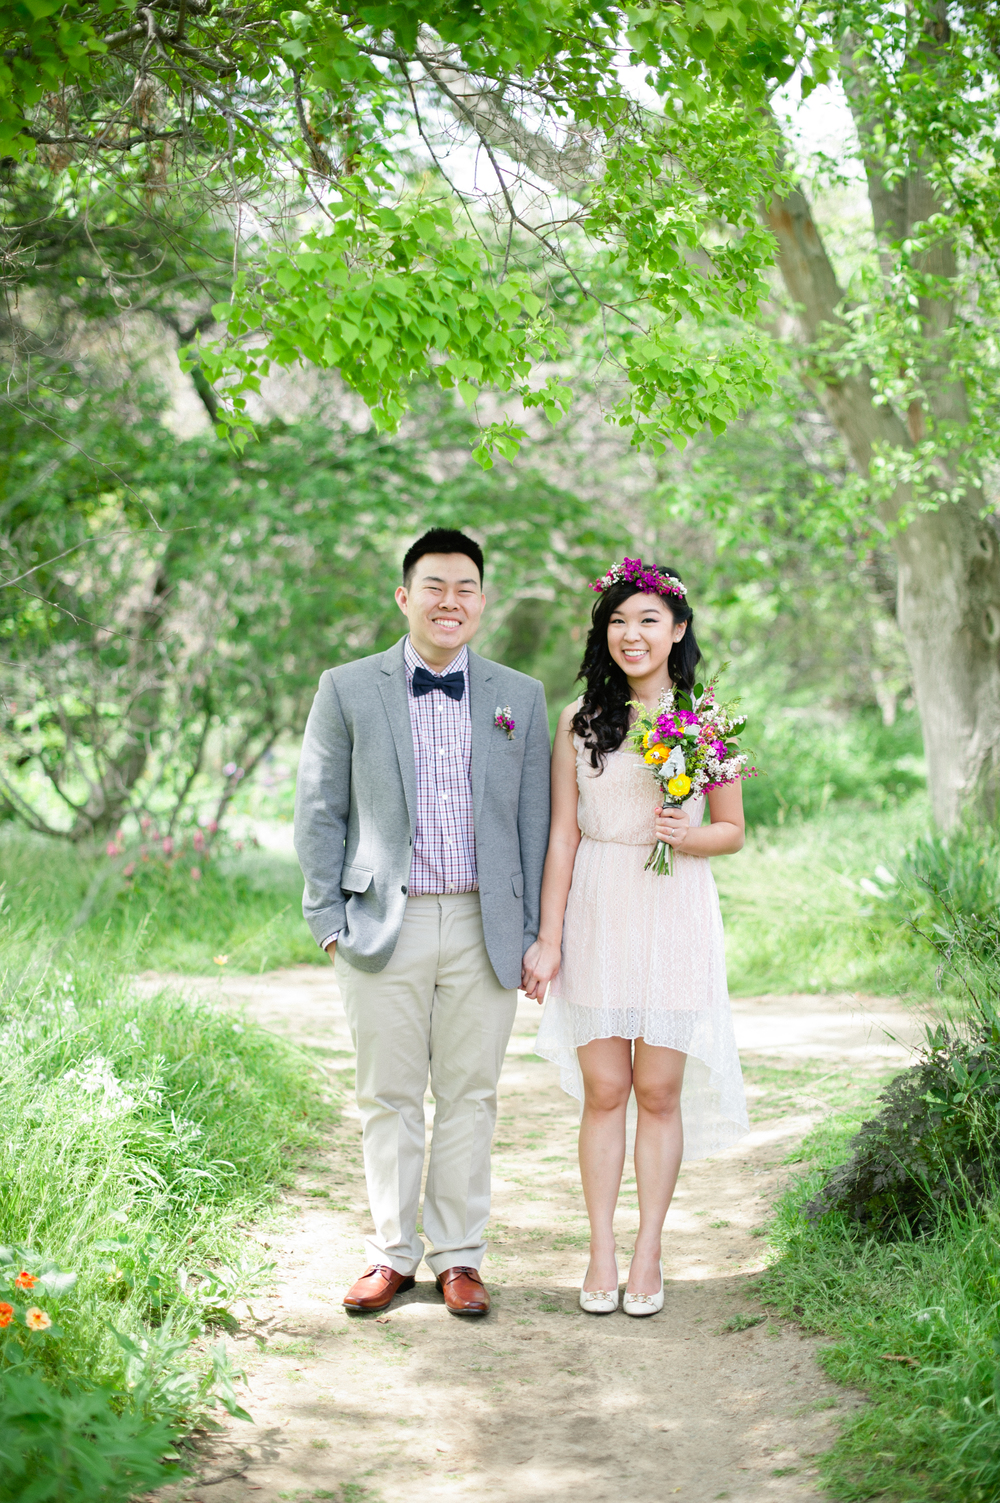 agnes and chun - carissa woo photography-201.jpg